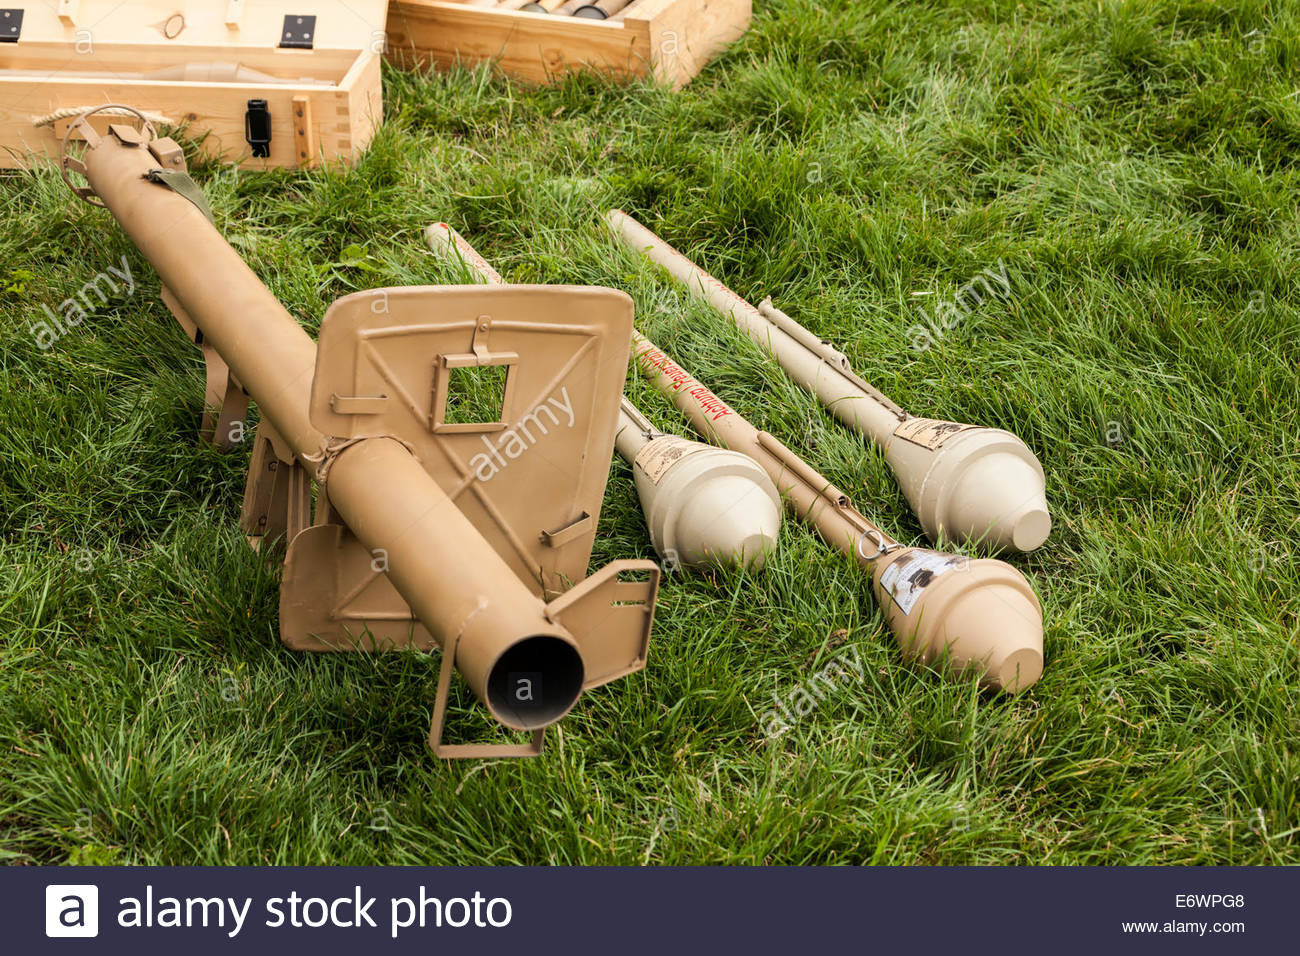 Panzerschreck German Anti Tank Rocket Launcher - World War Two - Stock Image